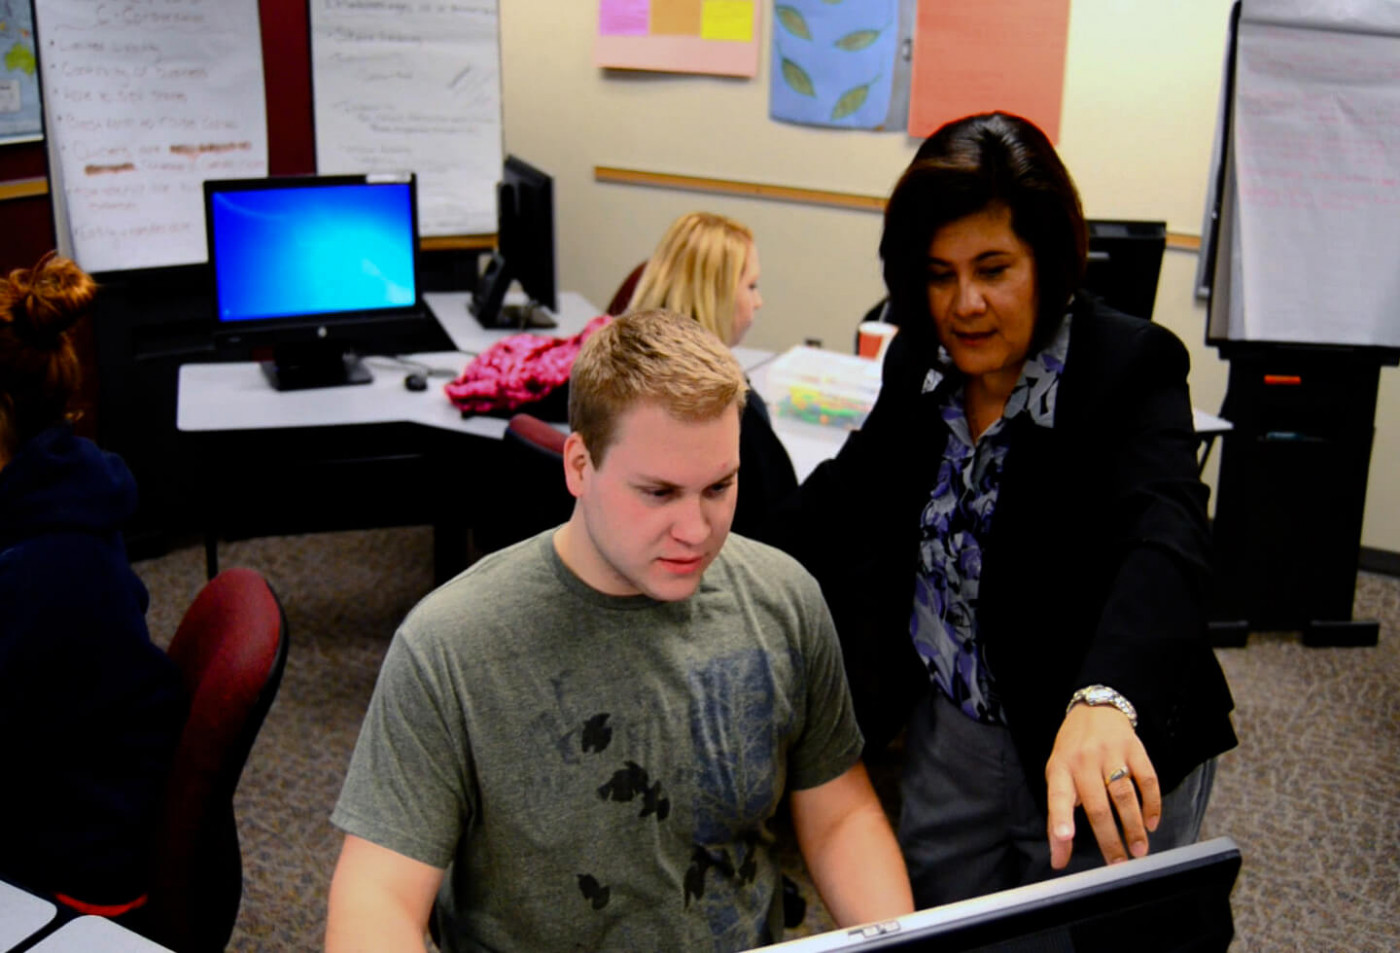 Instructor advising student over computer